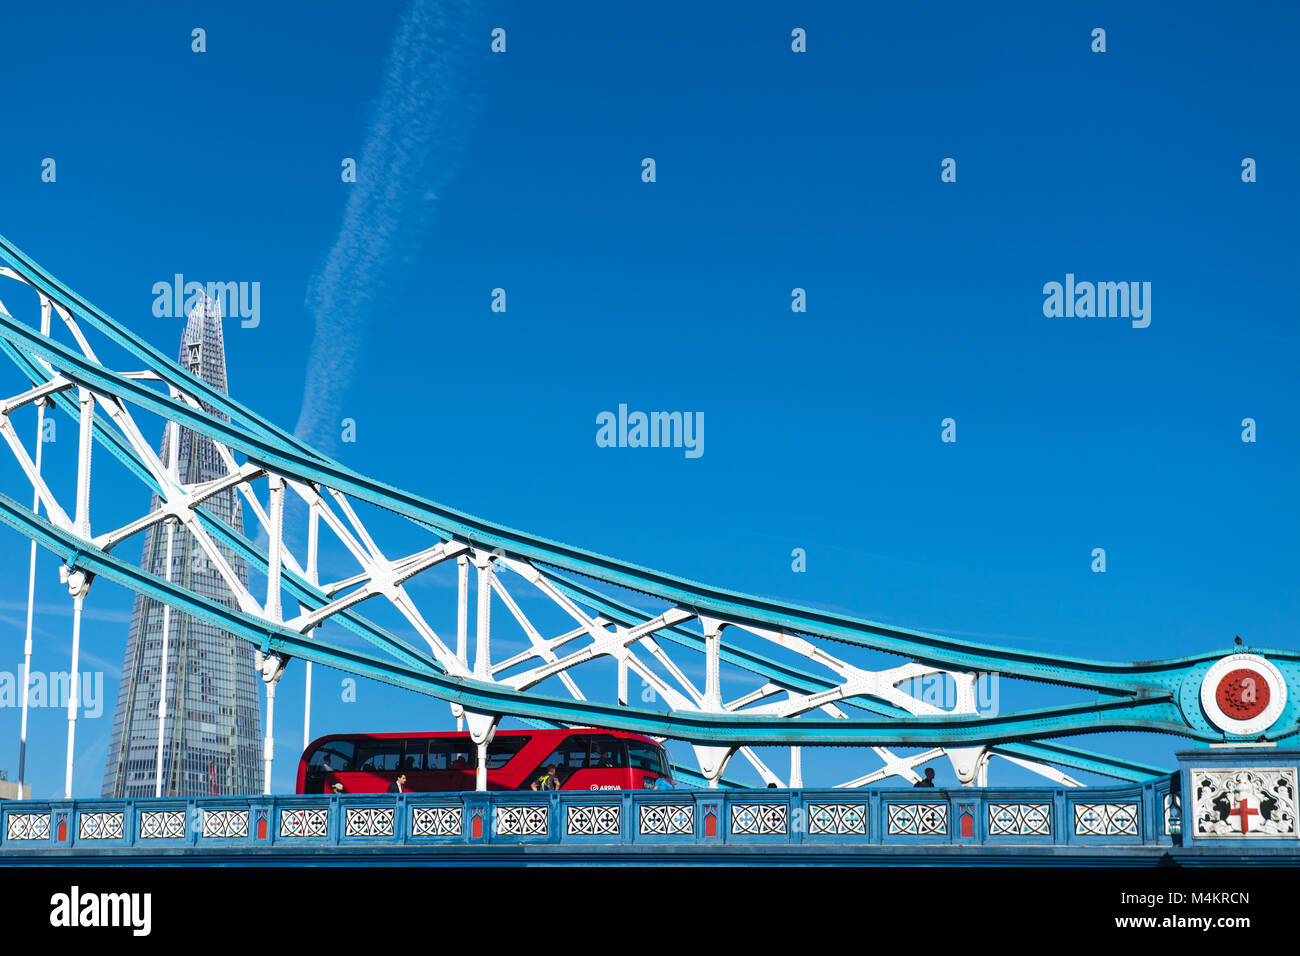 Red double decker bus driving on Tower Bridge in London, England, UK - Stock Image